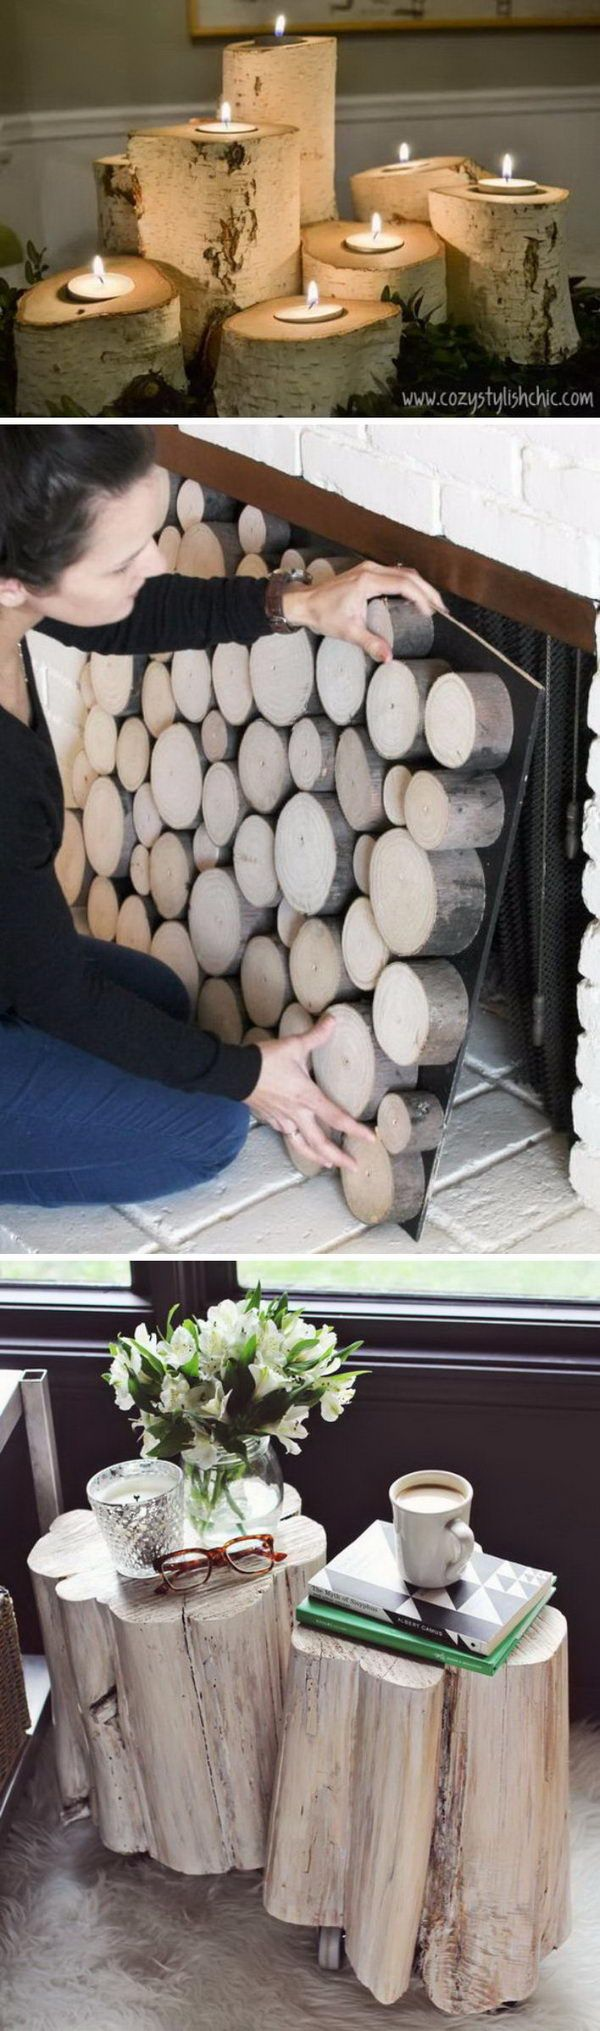 Cool Tree Stump and Log DIY Projects